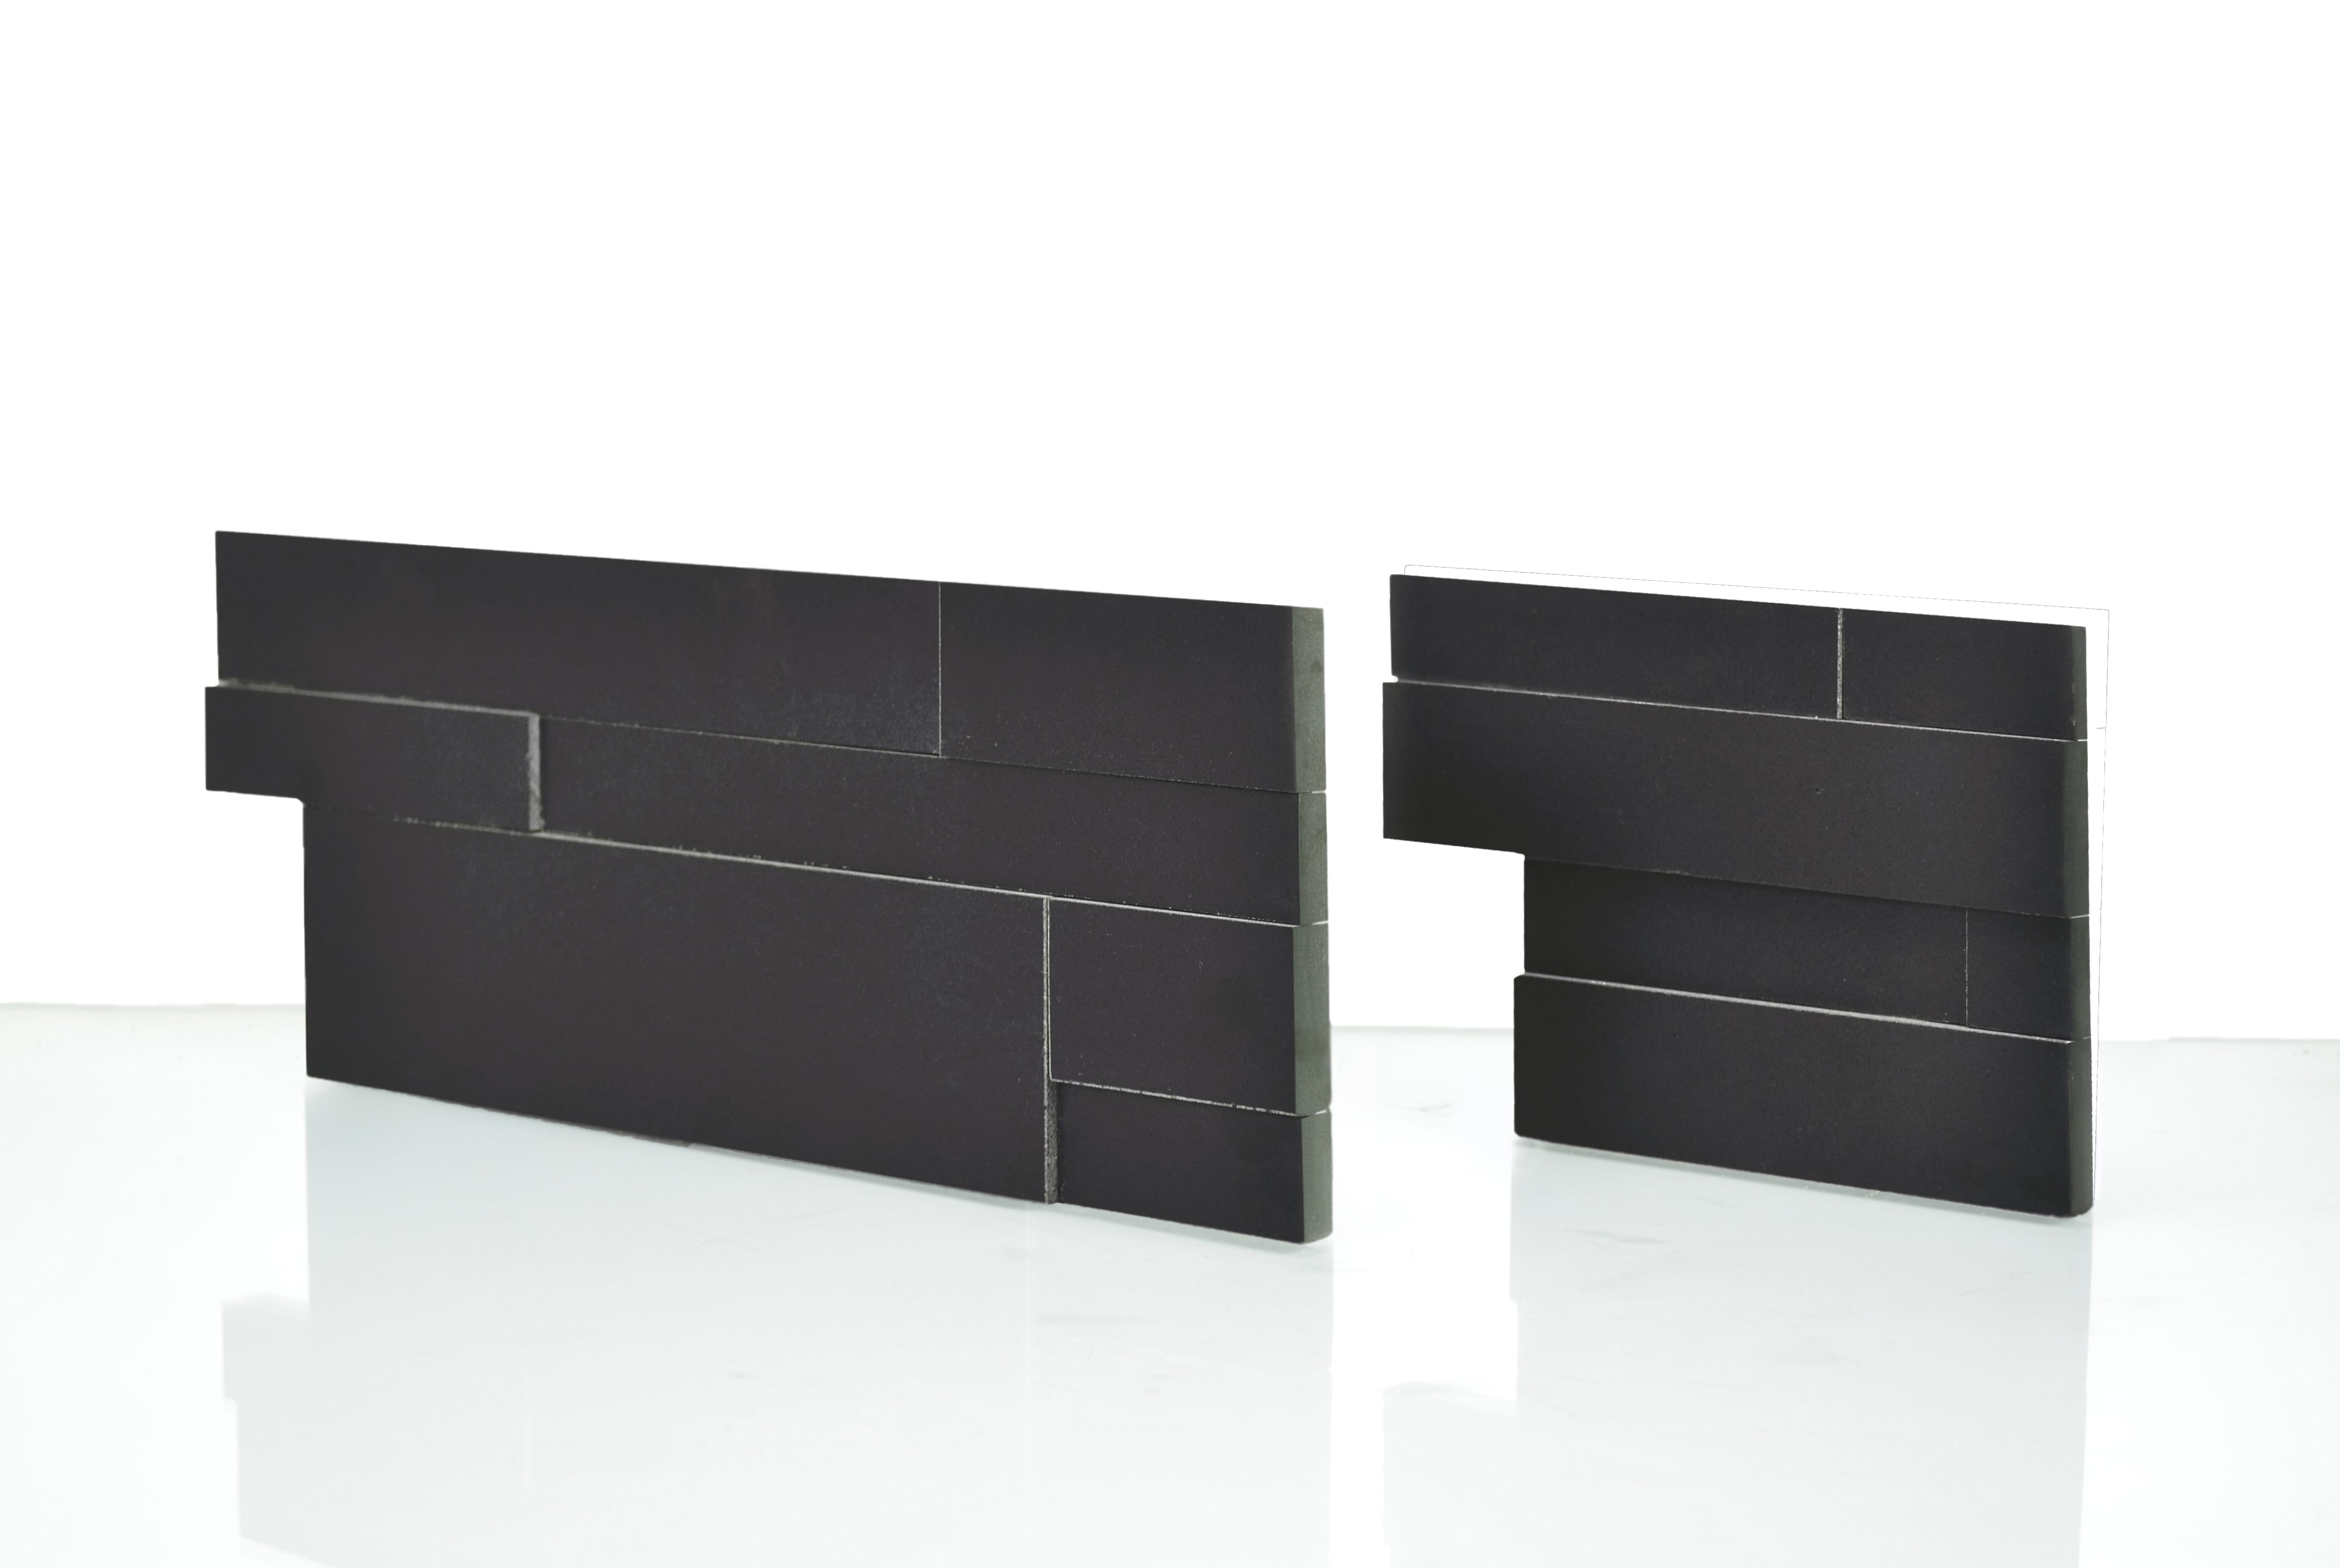 Studio Shot of a Natural End Panel of the Norstone Aksent 3D Series Stone Veneer Panel in Ebony Basalt